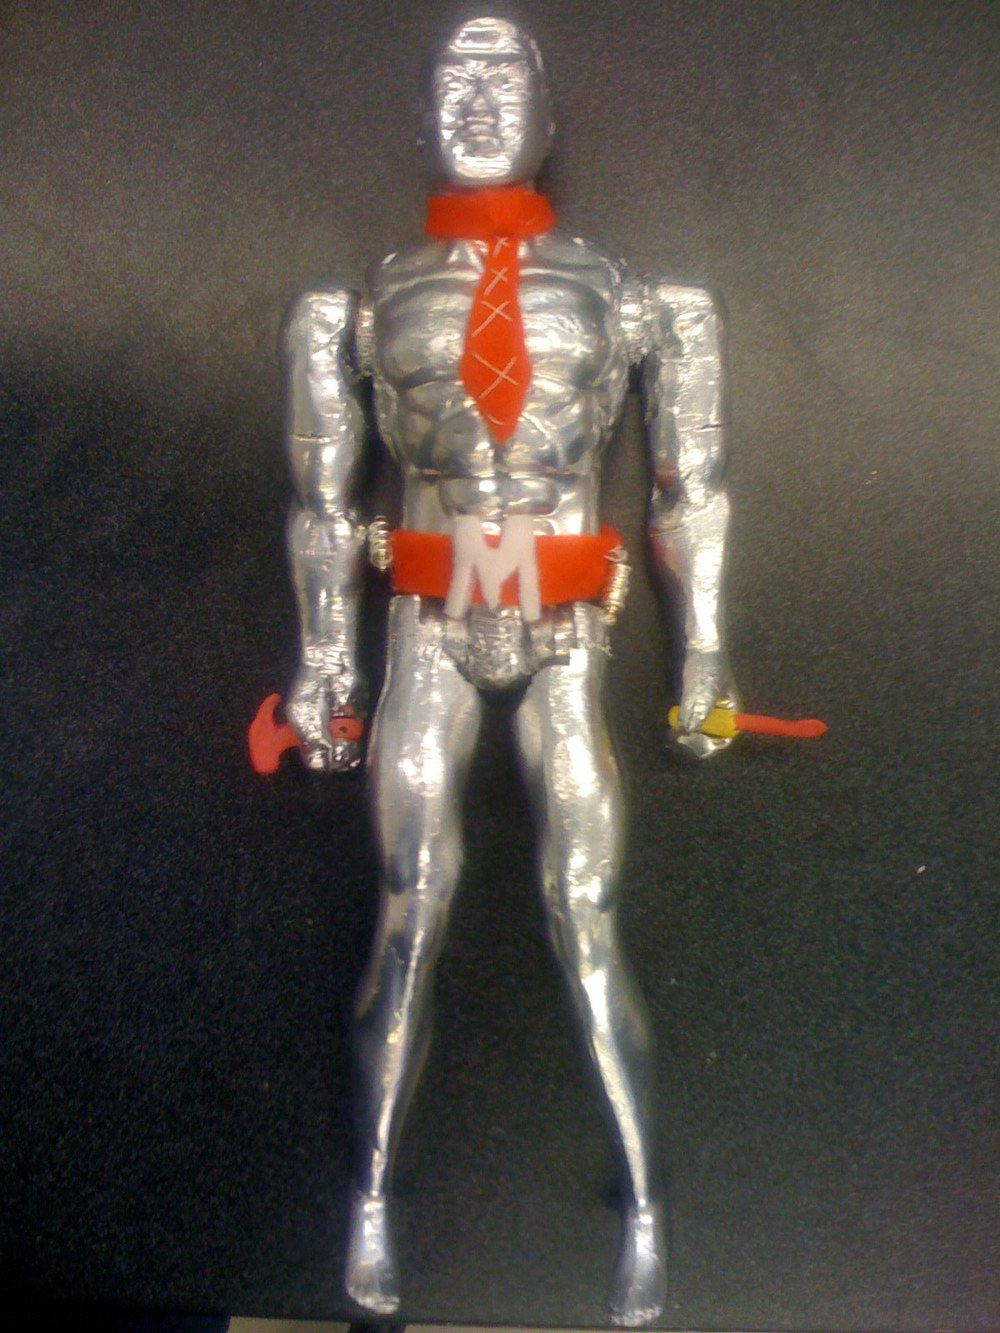 I made this aluminum action figure in high school